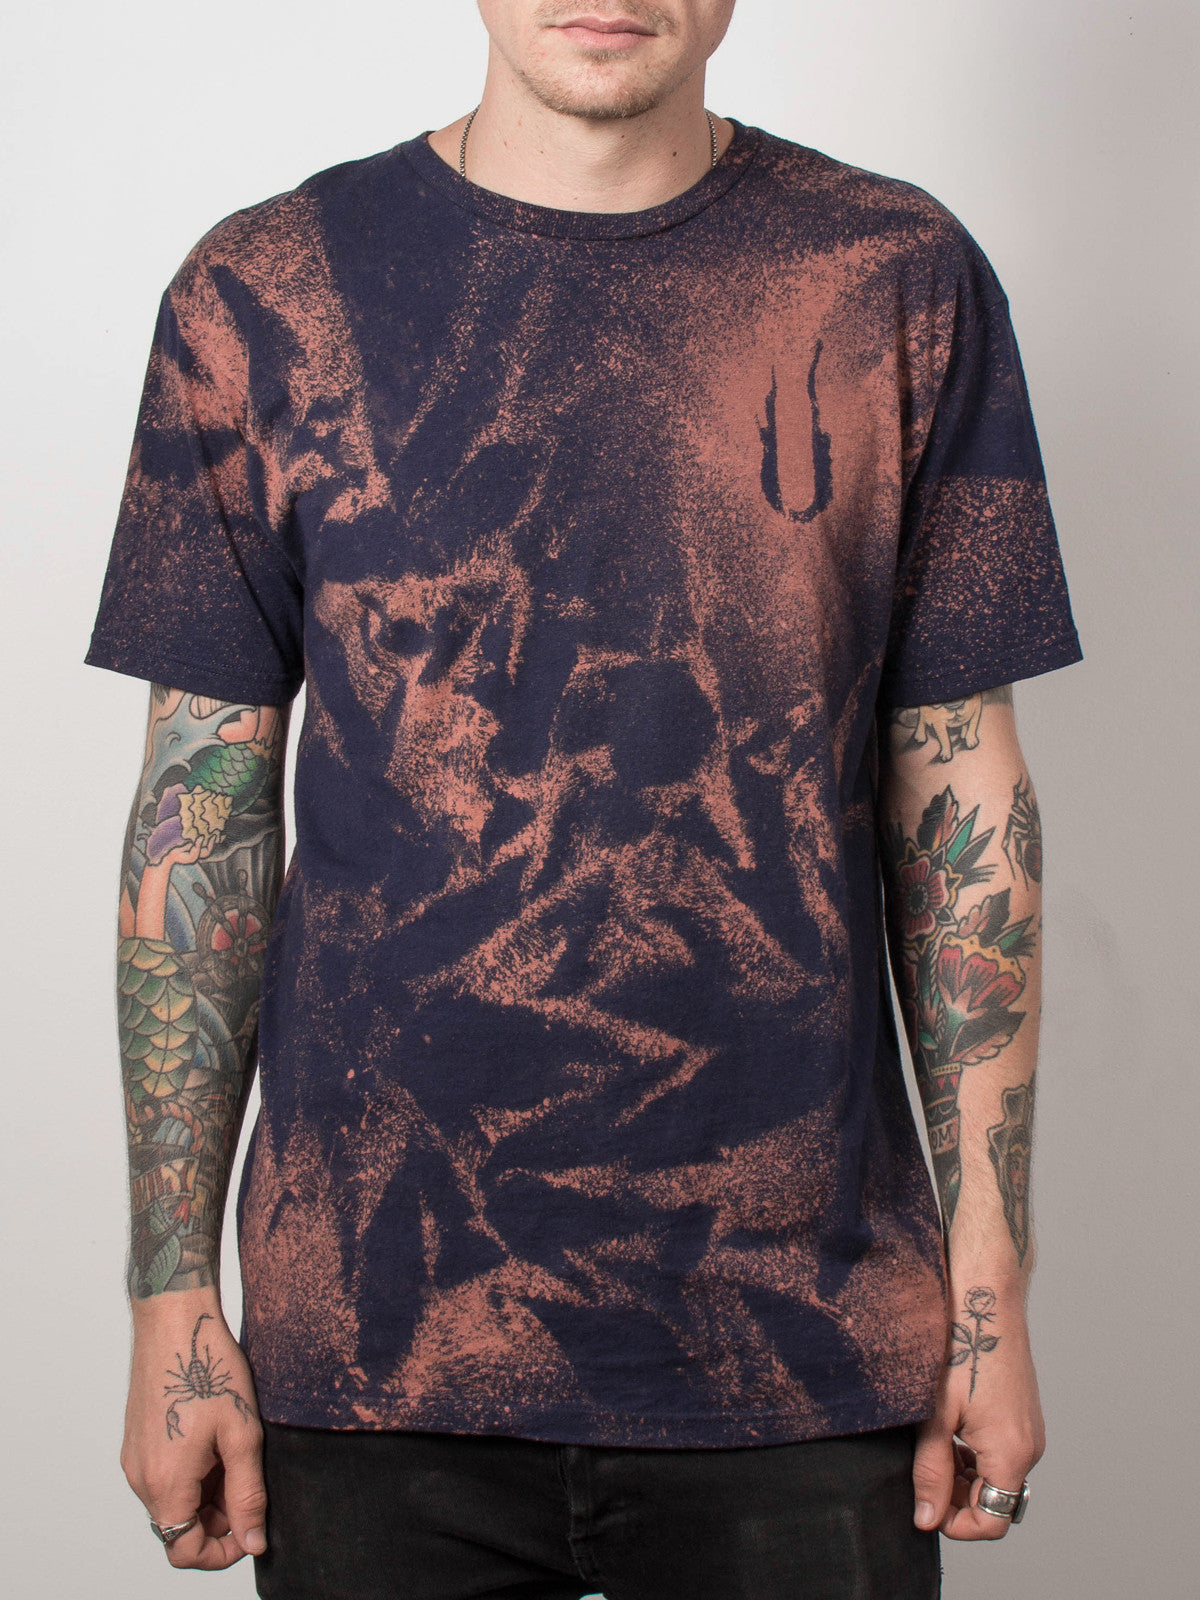 August Burns Red - Stencil Bleach Shirt - Merch Limited